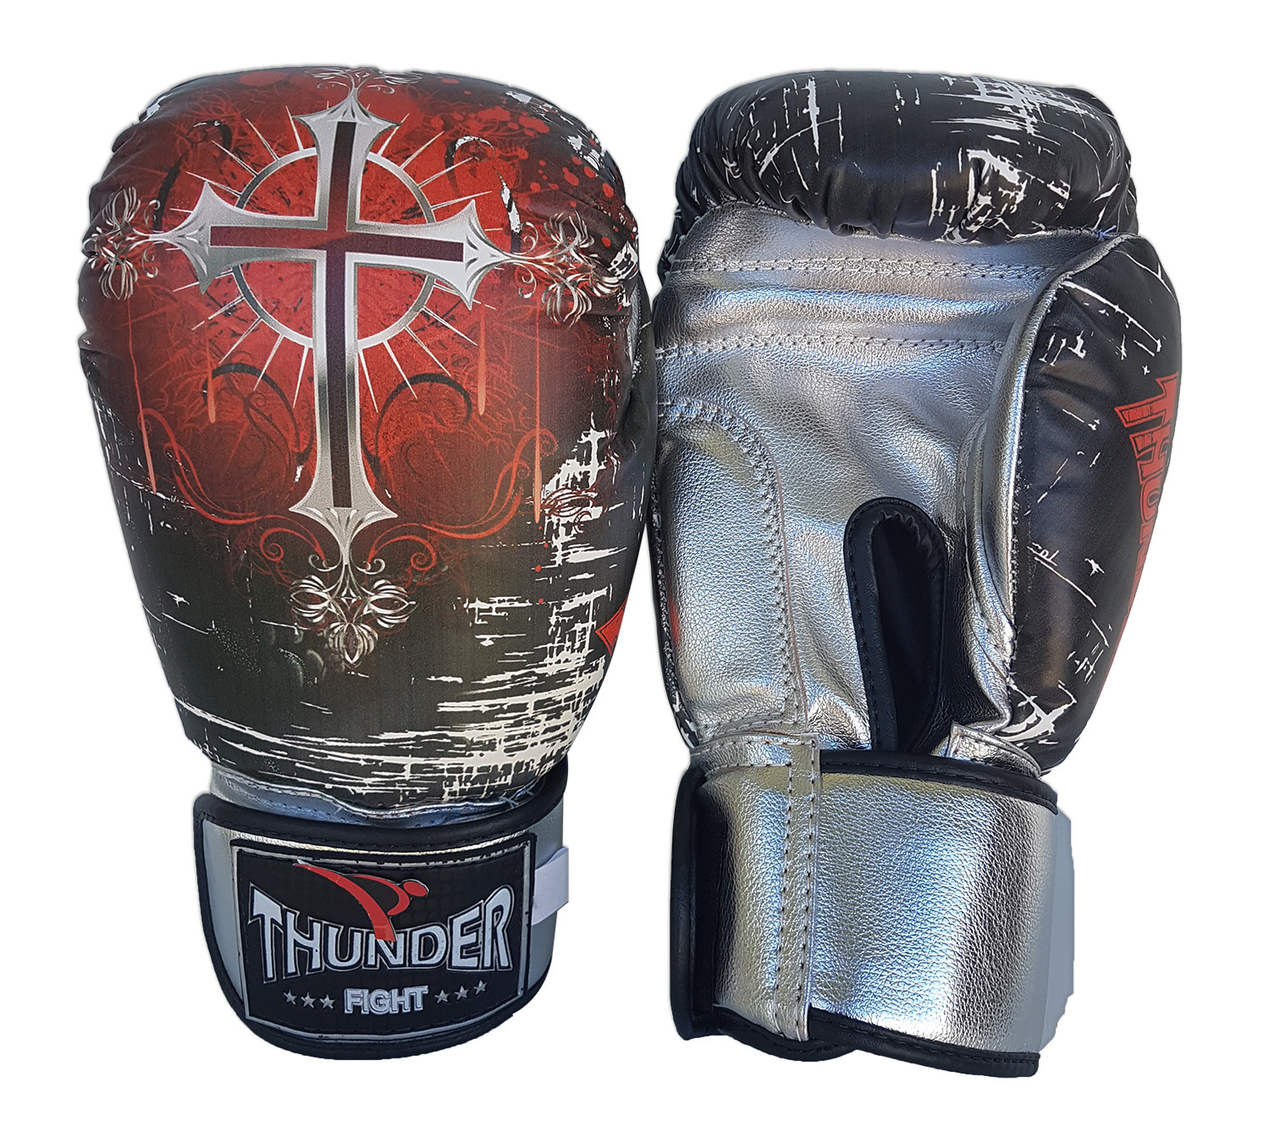 Luva de Boxe / Muay Thai 10oz - Caveira / Cruz - Thunder Fight  - PRALUTA SHOP